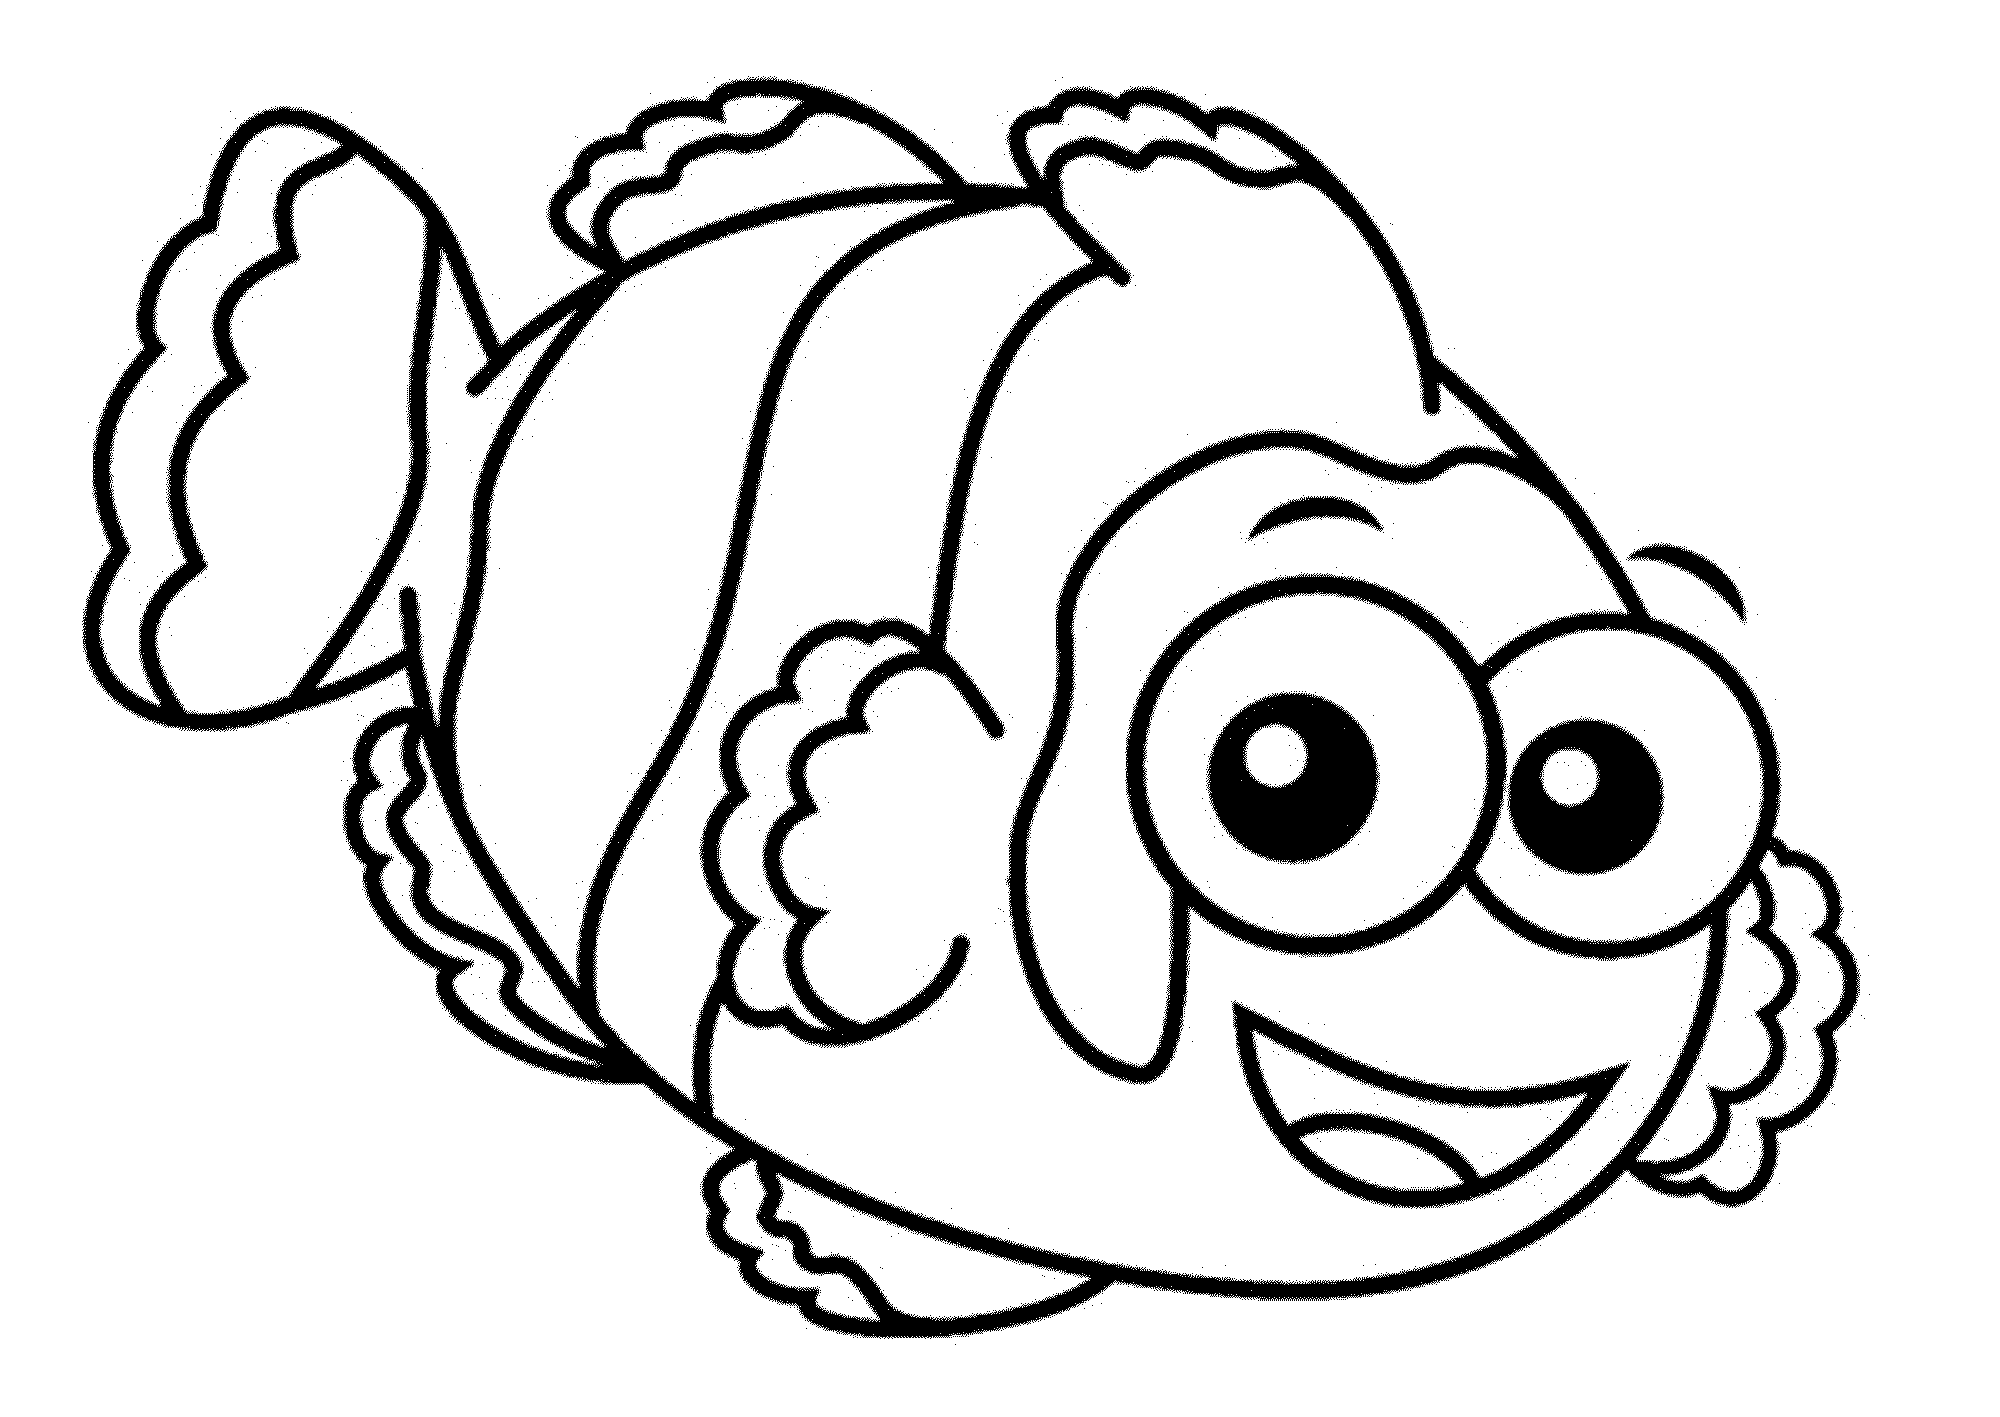 fish color free printable fish coloring pages for kids fish color 1 1